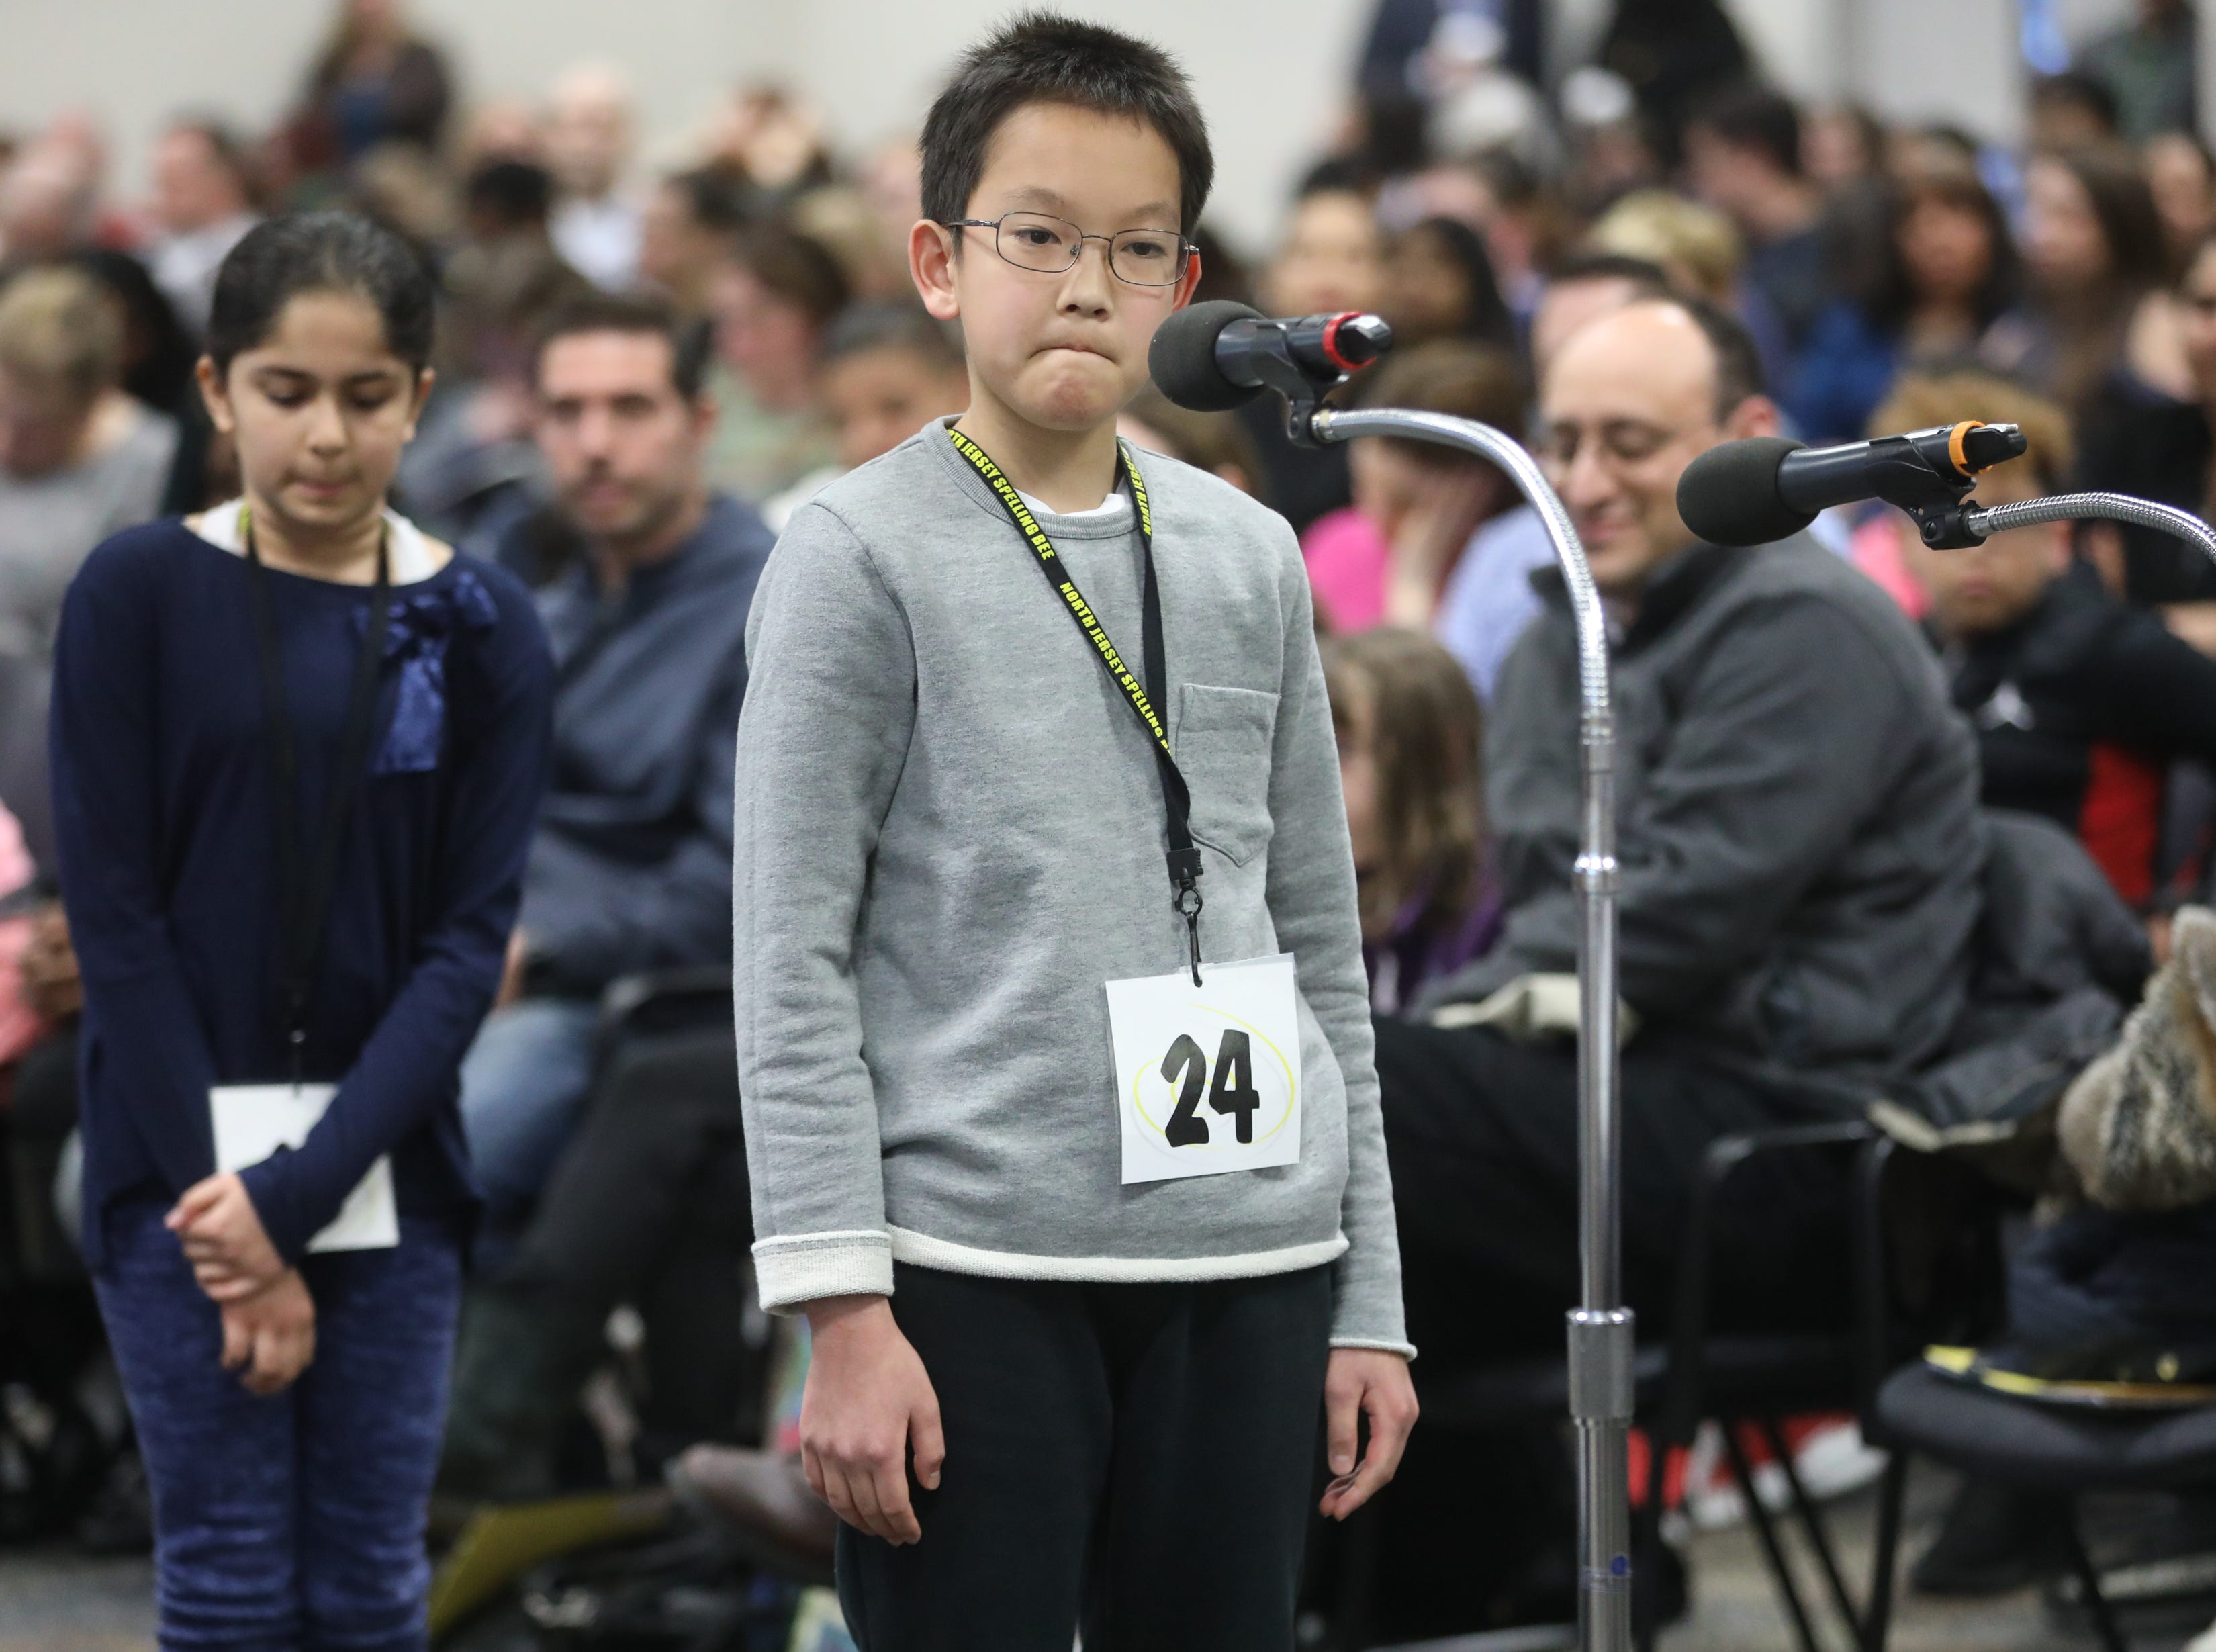 Tai Nakamura, of Emerson, competes in the first round of the 2019 North Jersey Spelling Bee, in Paramus. Thursday, March 14, 2019